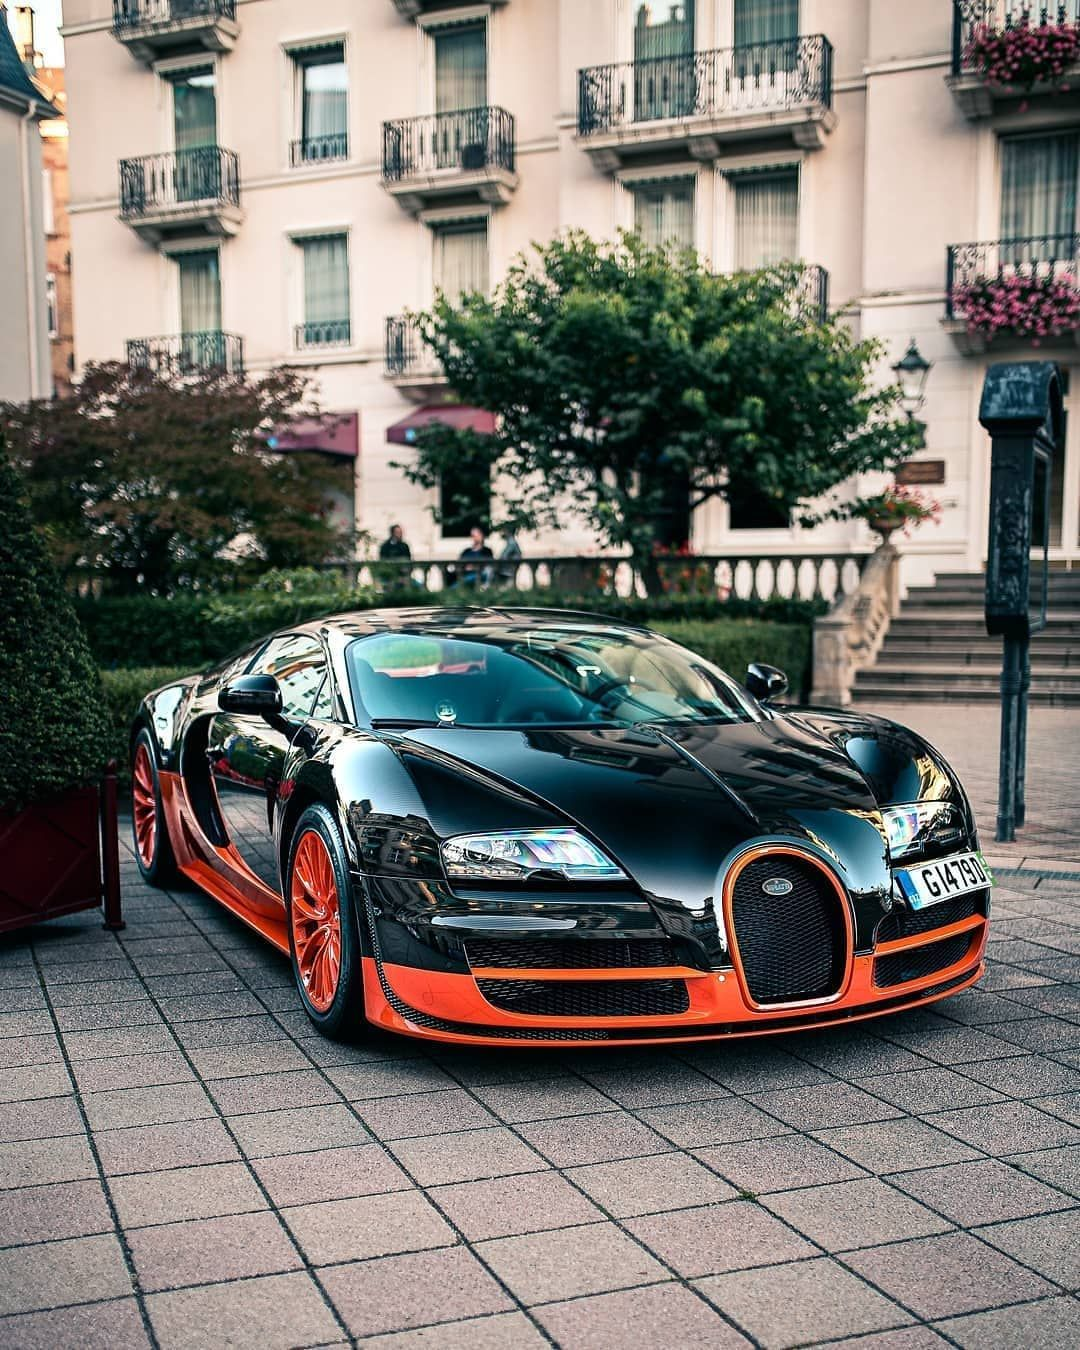 B U G A T T I On Instagram Great Pictures Of Supersport Wre Photos By Carpitalbrothers Bugatti Veyron Supe Bugatti Bugatti Company Bugatti Chiron